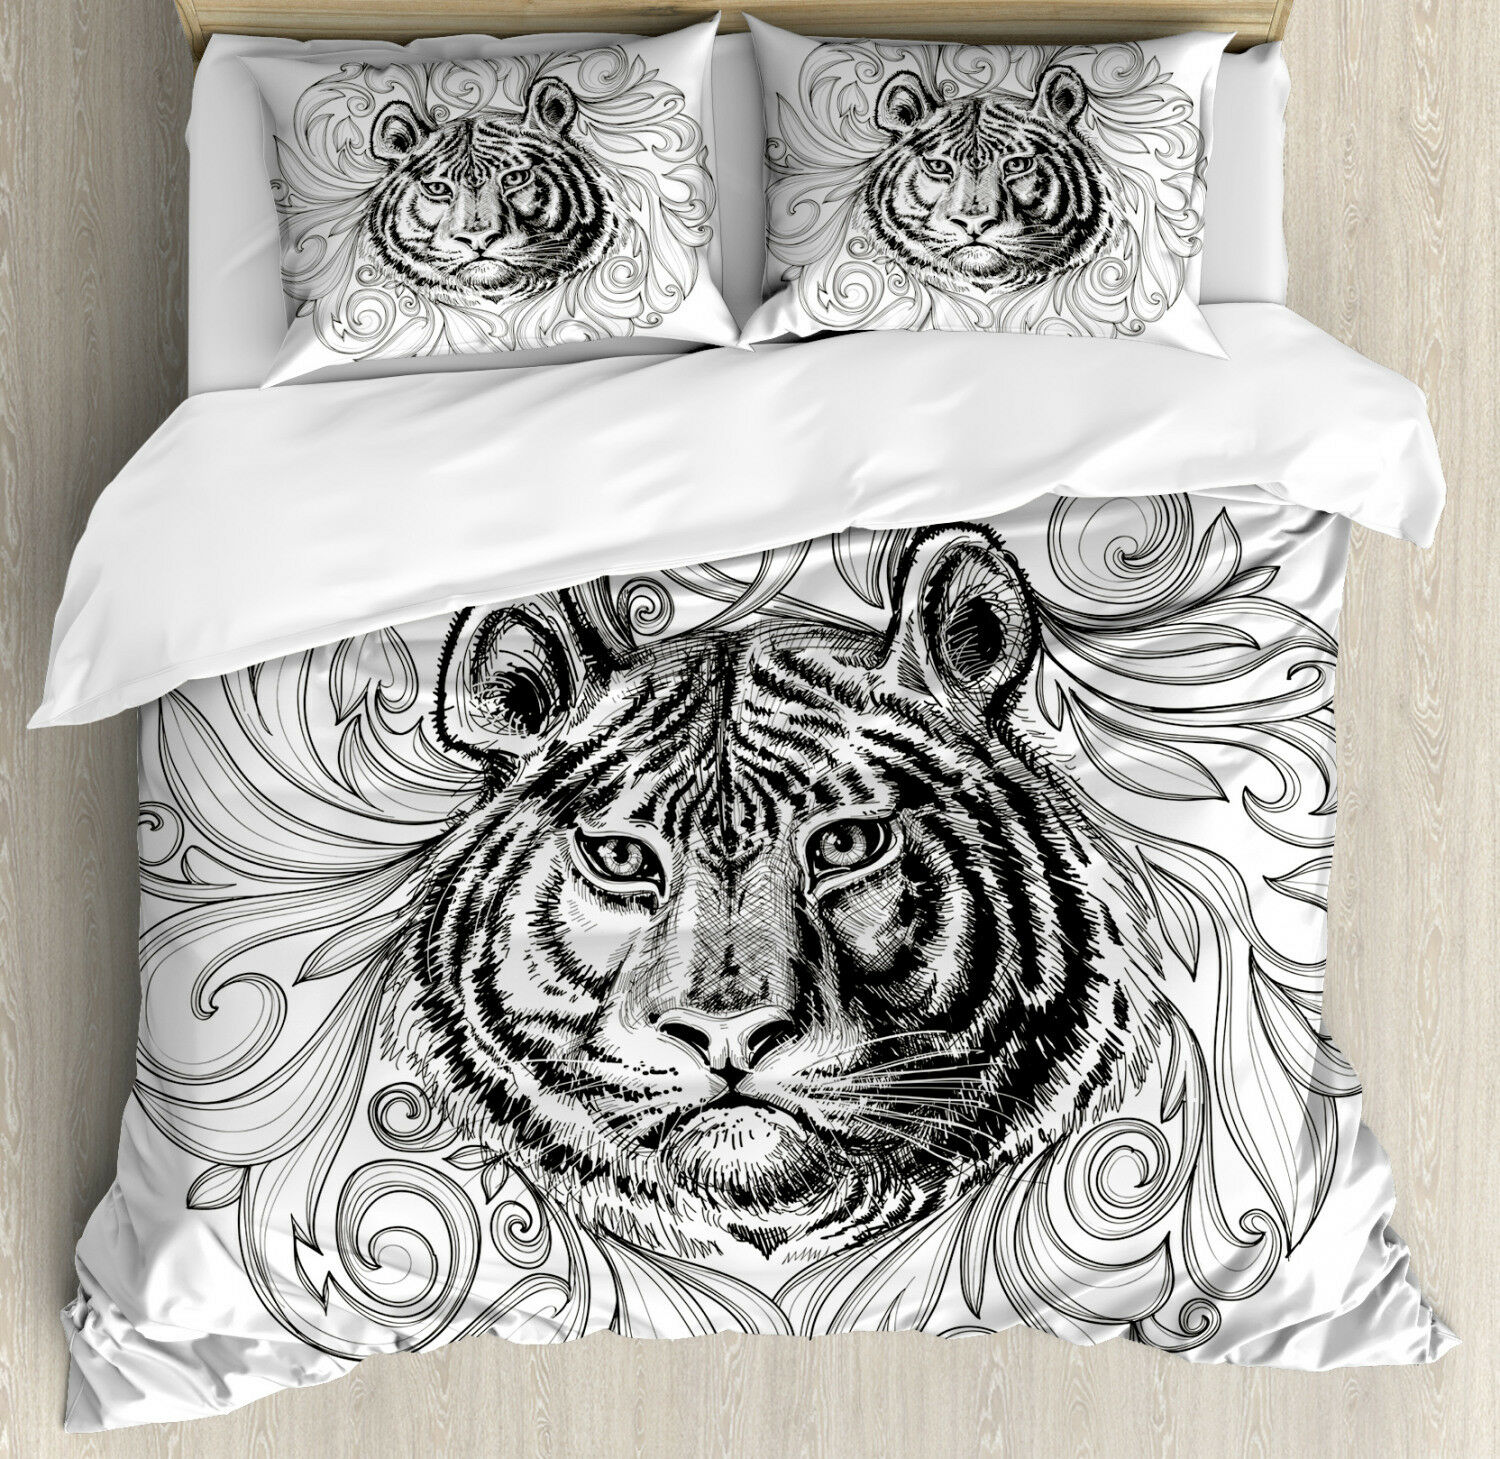 Tiger Duvet Cover Set with Pillow Shams Monochrome Feline Leaves Print